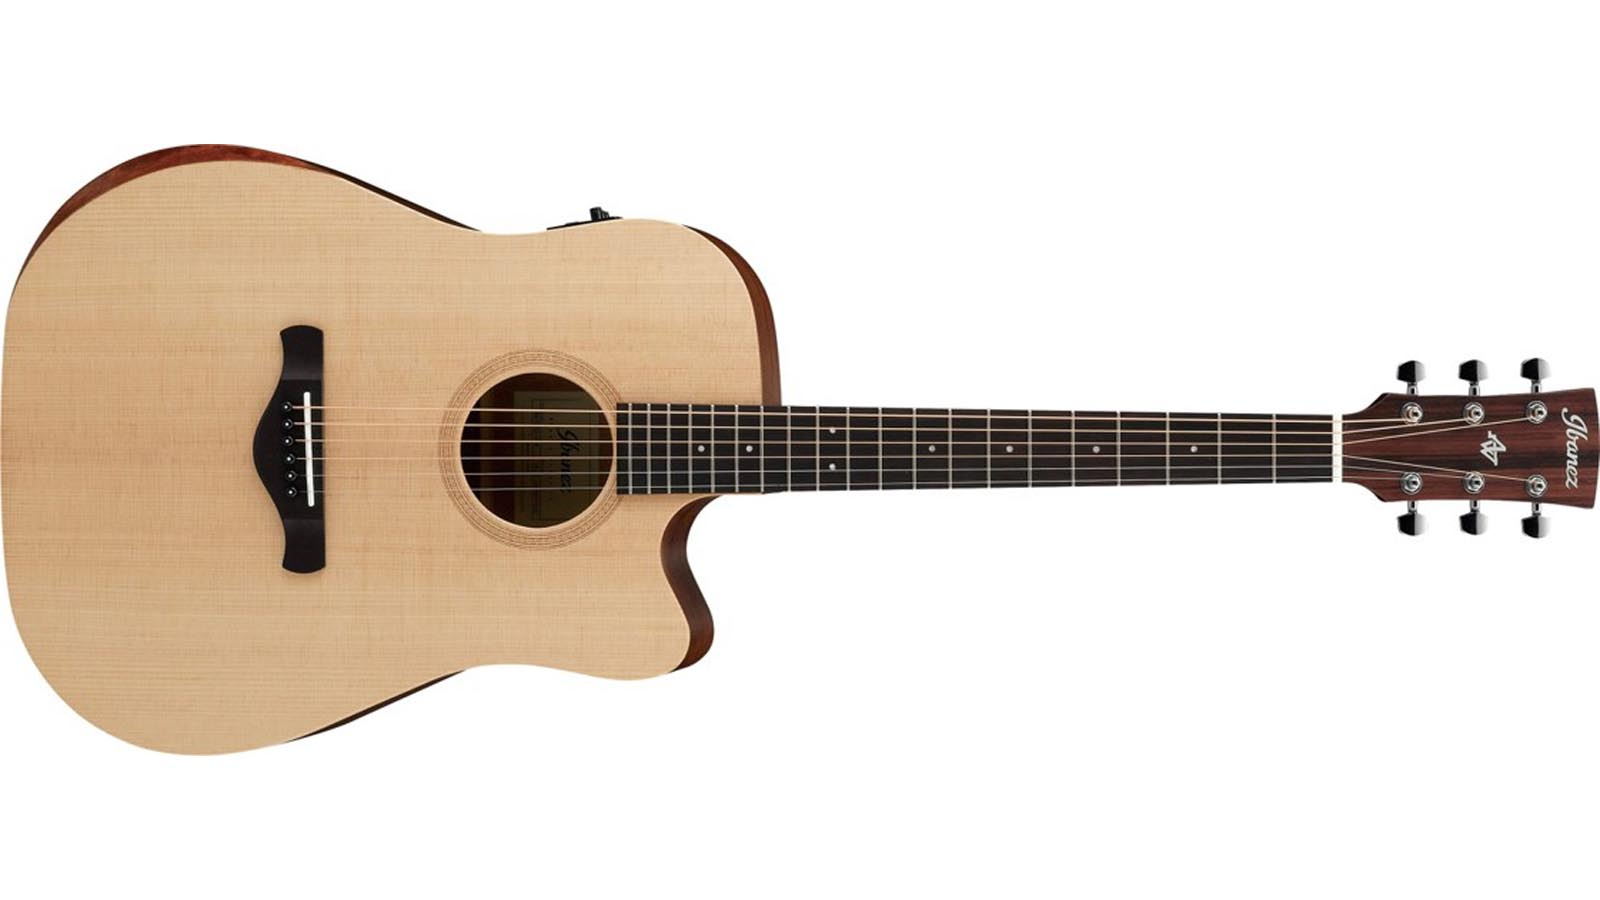 Ibanez AW150CE-OPN Open Pore Natural Artwood